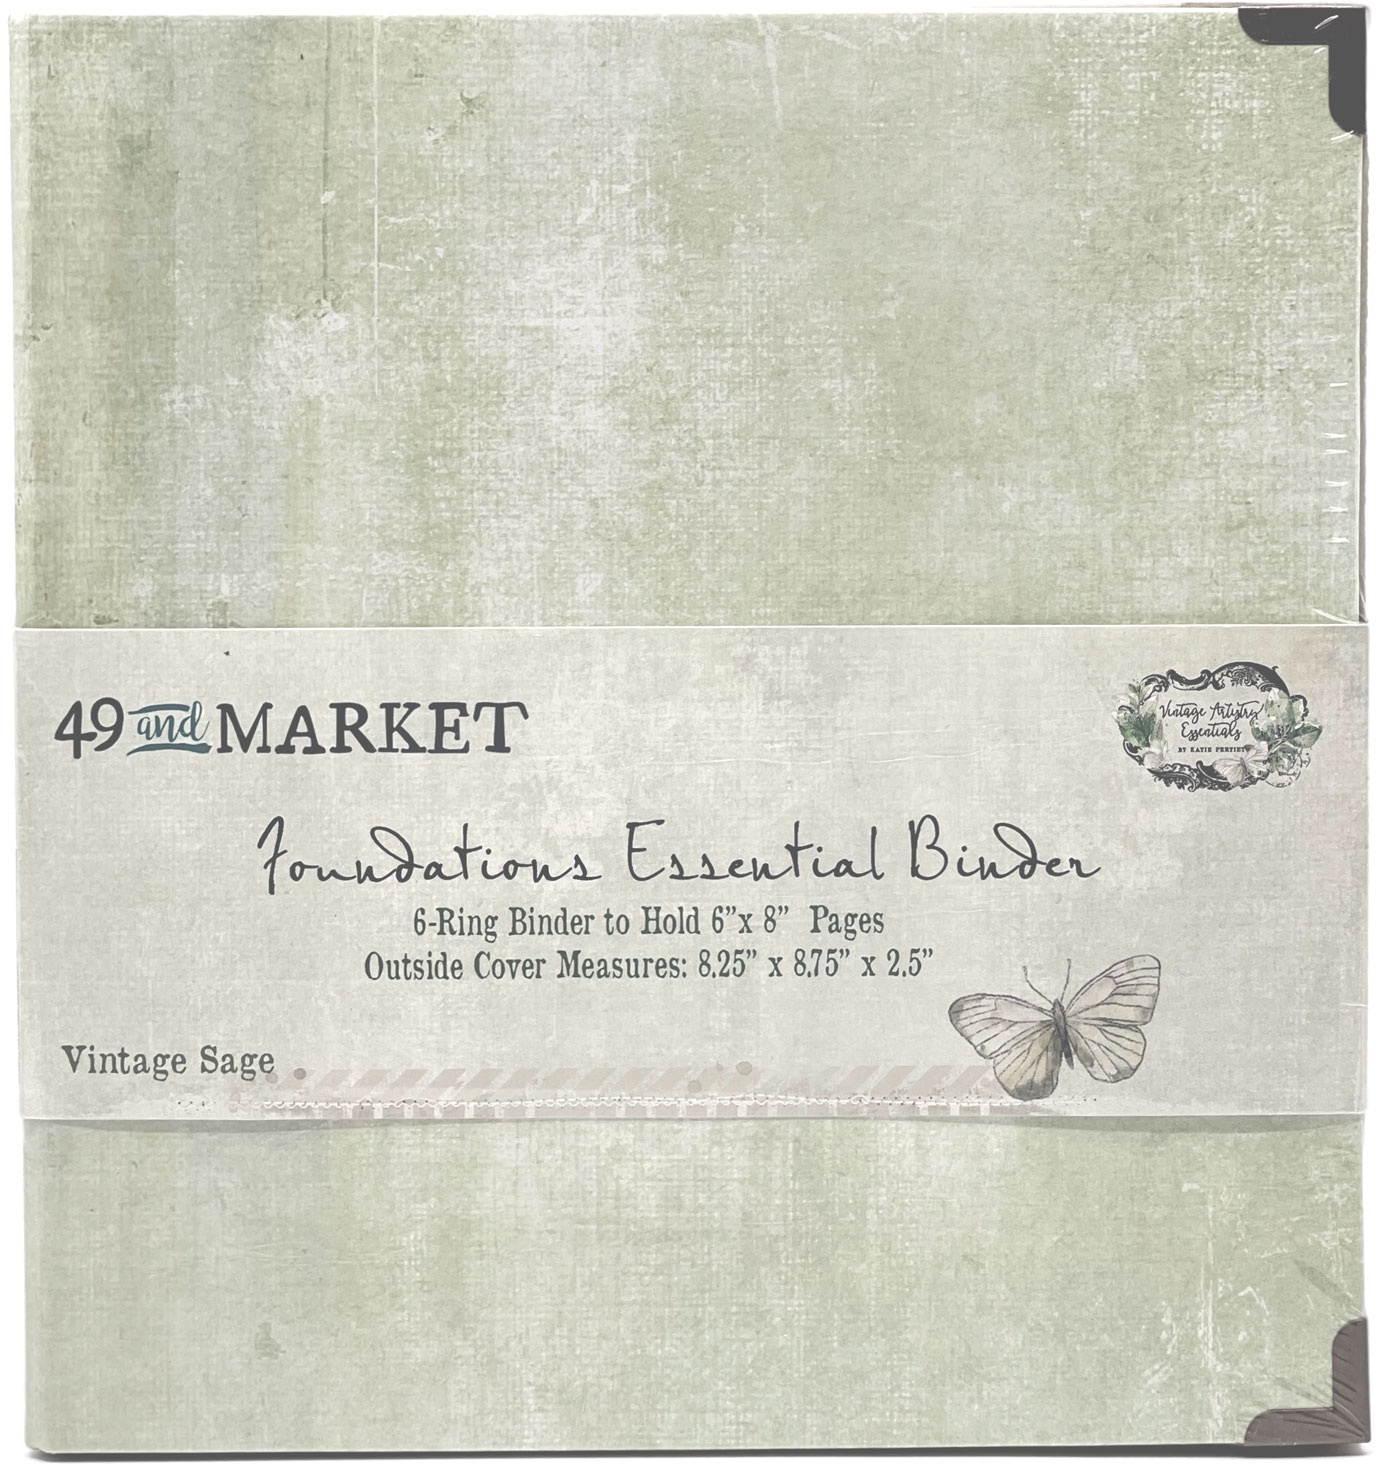 49 And Market Foundations Essential Binder-Vintage Sage